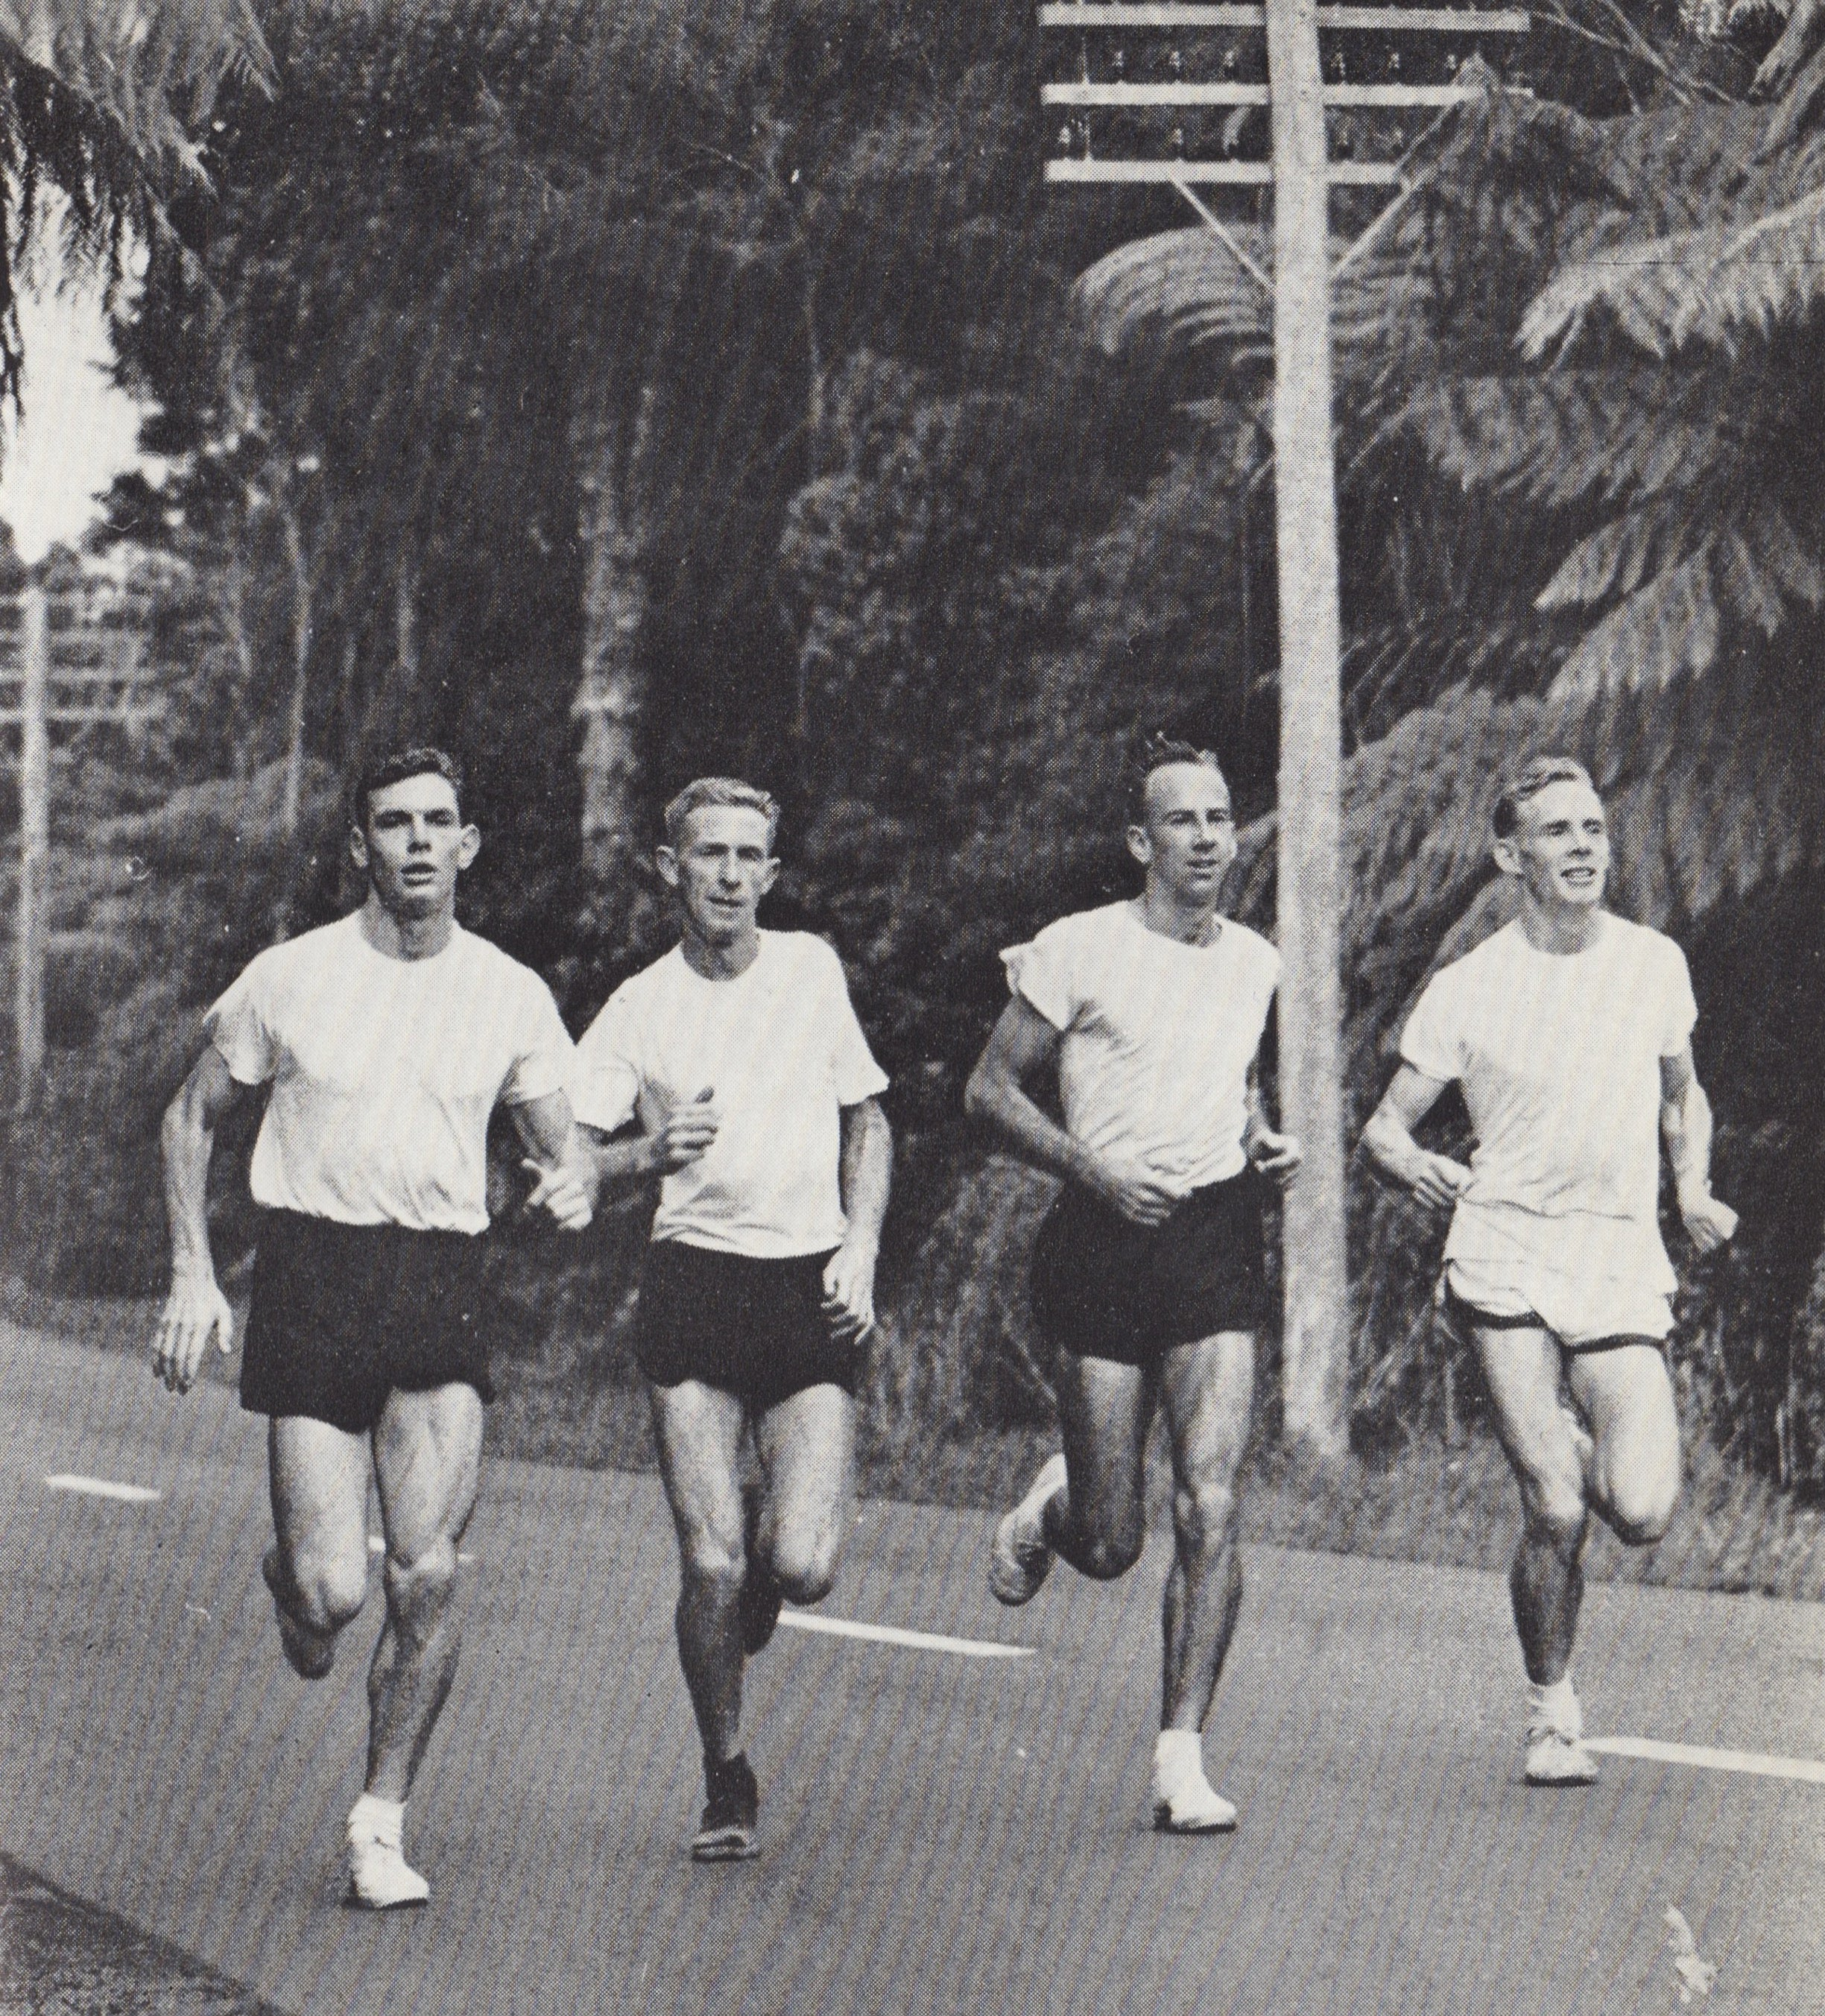 Lydiard runners on Waiaturua Route